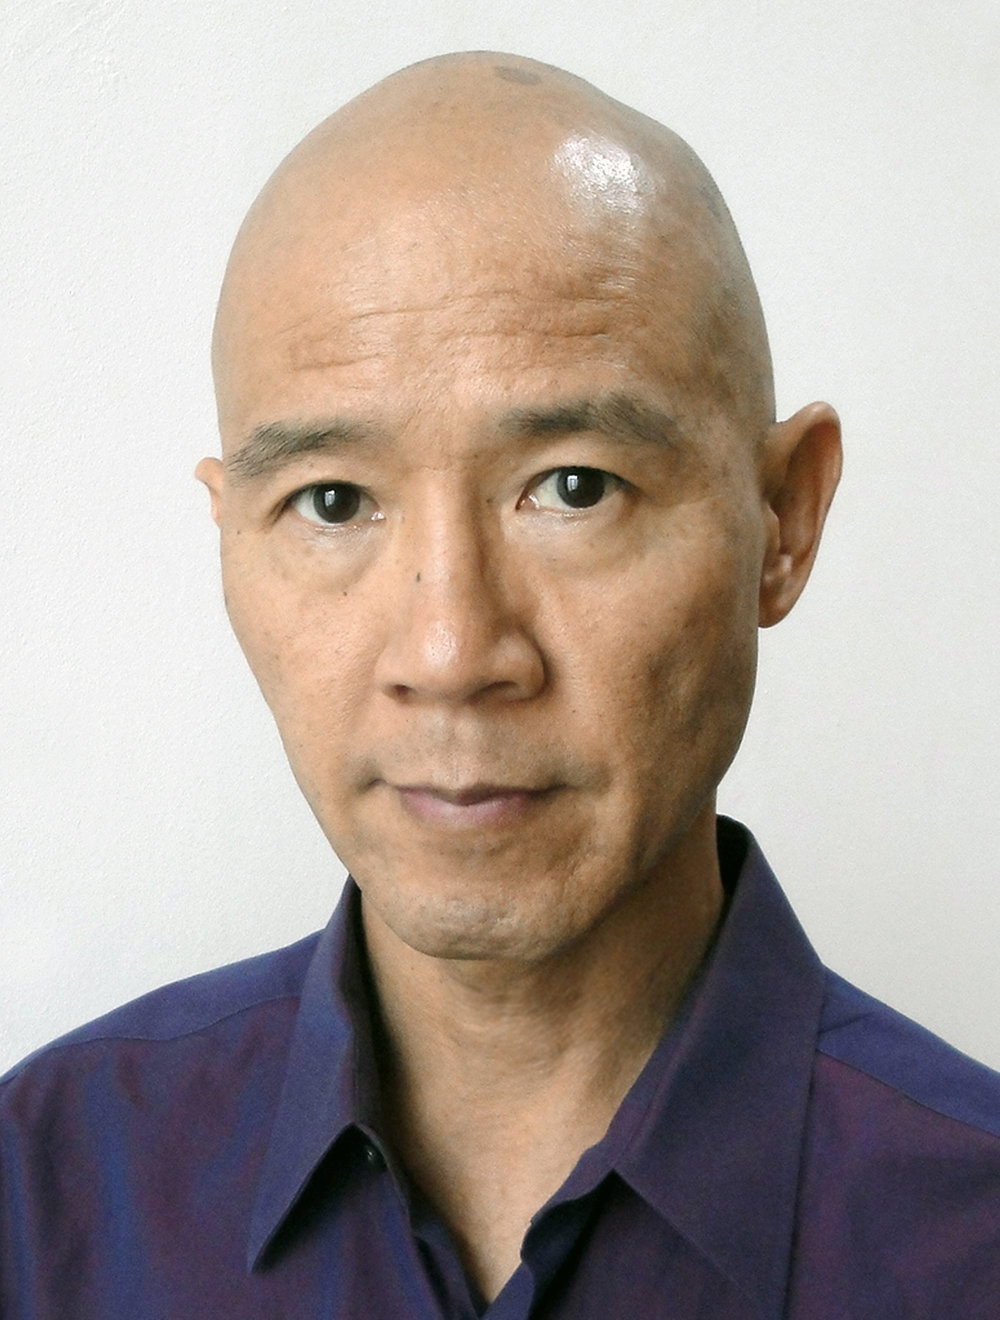 "Dan Kwong is an award-winning solo multimedia performance artist, director, playwright and visual artist who has been presenting his work nationally and internationally since 1989. Hailed by critics as ""a master storyteller"", Kwong combines his own life experiences with historical and contemporary material to explore the many facets of identity. His performances weave together autobiography, poetry, multimedia, dynamic physicality, and a generous sense of humor.  Kwong has performed at venues all across the U.S. and in England, Hong Kong, Thailand, Cambodia, Indonesia, Mexico, Canada, China, Korea and Japan. He is recipient of fellowships from the National Endowment for the Arts, Rockefeller Foundation, Asian Cultural Council, and many more. He received awards for Outstanding Mid-Career Artist from the California Community Foundation and the City of Los Angeles Cultural Affairs Department, was honored by the Japanese American Historical Society for Outstanding Contributions to JA culture, and received the Santa Monica Artist Fellowship for 2017/18.  In 2004 his first book, FROM INNER WORLDS TO OUTER SPACE: The Multimedia Performances of Dan Kwong, was published by University of Michigan Press, and the significance of his body of work is acknowledged in ""A History of Asian American Theatre"" (Cambridge Univ. Press, 2006). He was founder of TREASURE IN THE HOUSE, L.A.'s first Asian Pacific American performance & visual art festival, from 1991 to 2003 at Highways Performance Space where he also served on the Board of Directors for 17 years.  Since 1990 Kwong has been affiliated with Great Leap Inc., the multicultural performing arts organization founded by Nobuko Miyamoto. As Associate Artistic Director, he manages Great Leap's touring productions, is Project Director of their COLLABORATORY mentorship program, and directs and edits their environmentally-themed music video series, Eco-Vids. www.greatleap.org.  In summer of 2018 he was one of four artists selected for the inaugural +LAB Artist Residency Program, living and working in Little Tokyo for three months. For his project he interviewed over 50 community members of Little Tokyo, collecting their stories and presenting them in a reading at the Japanese American National Museum. He is continuing to develop this project.  Since 2000 he has worked on international collaborations throughout Asia, where he continues to travel for various projects. This February/March he will be in Taiwan developing a new collaborative performance with experimental filmmaker/poet/performer Tsai Zhijin.  Kwong is a graduate of the School of the Art Institute of Chicago and a Resident Mentor Artist at 18th Street Arts Center in Santa Monica. www.dankwong.com"